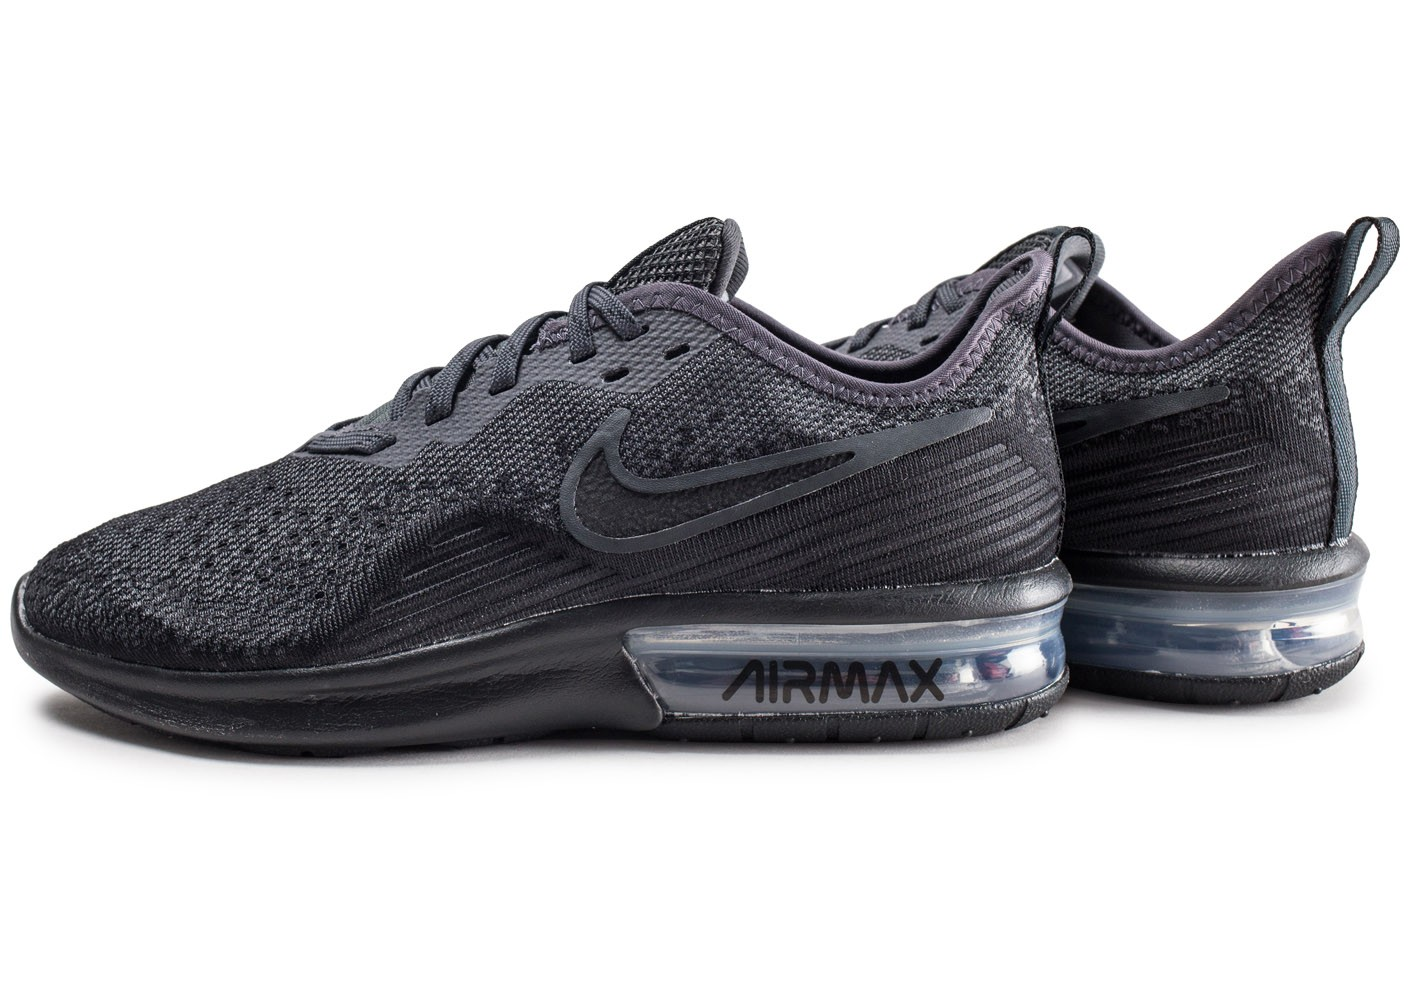 Nike Air Max Sequent 4 noir anthracite Chaussures Baskets